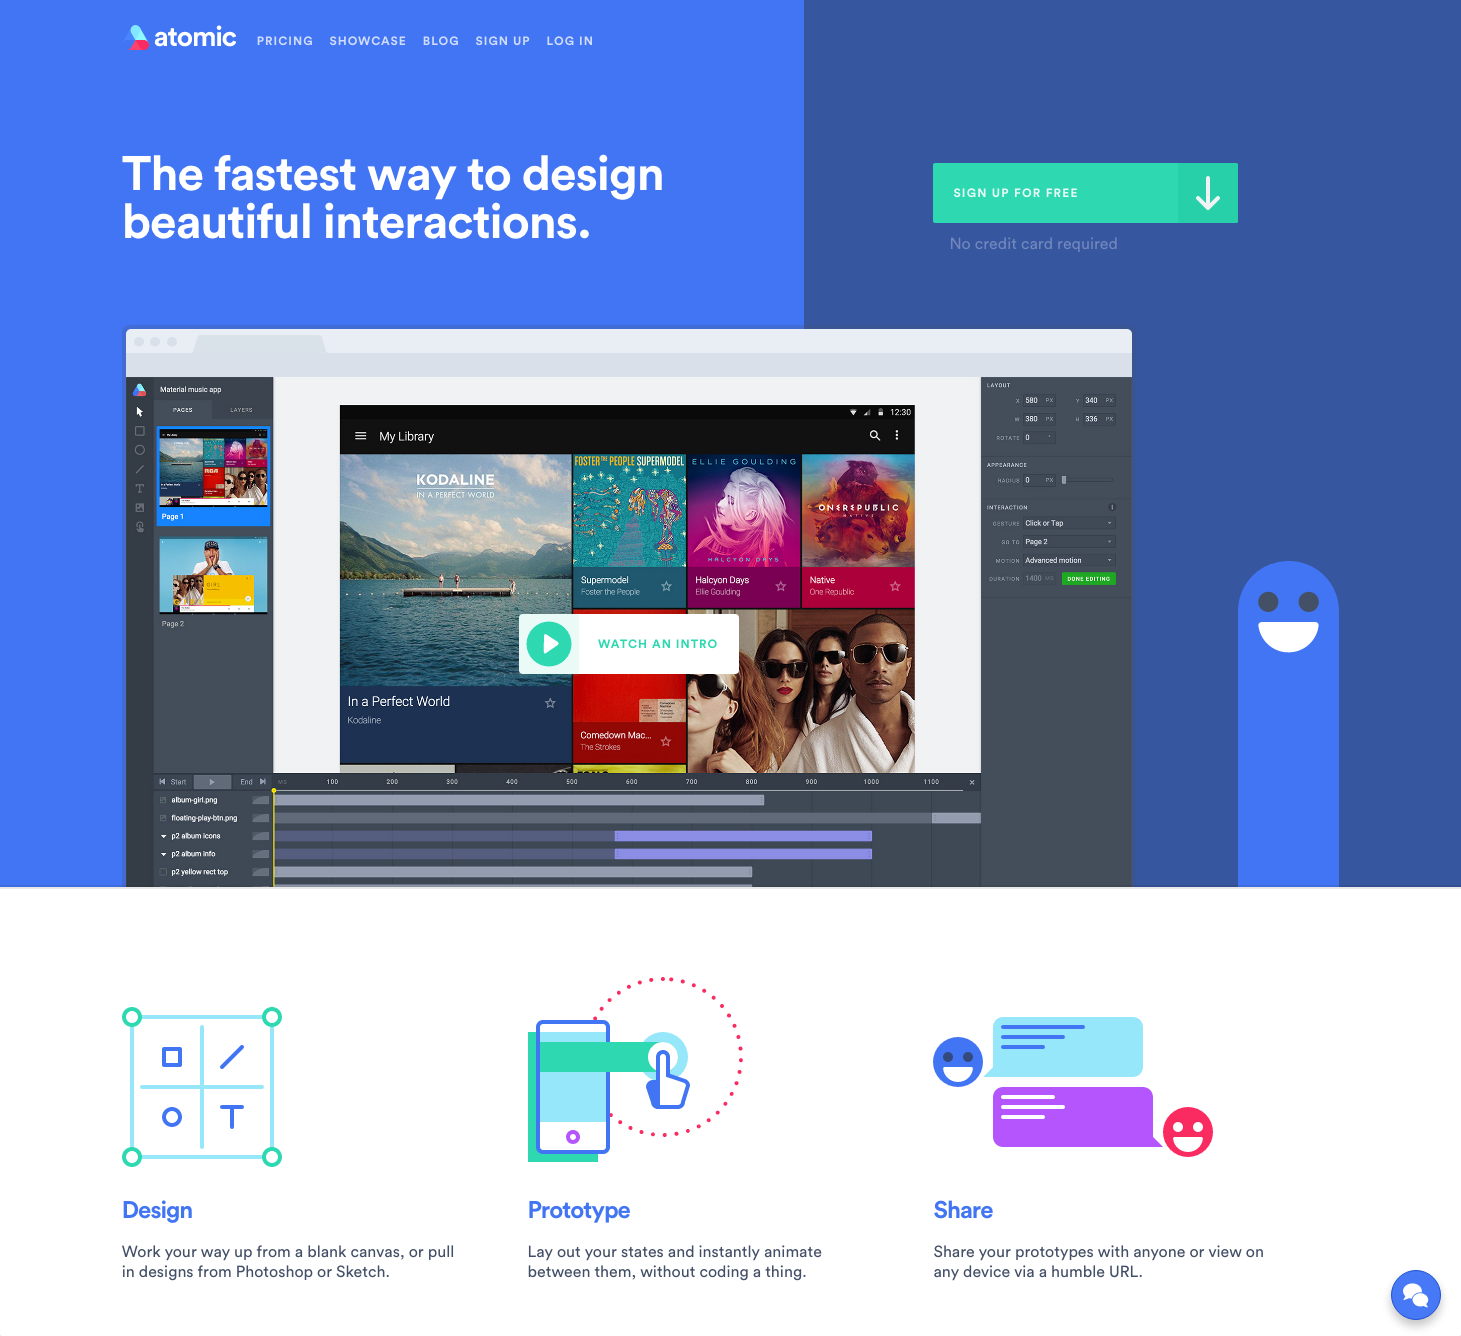 Illustrations, colors and layout is really nice o n this site.